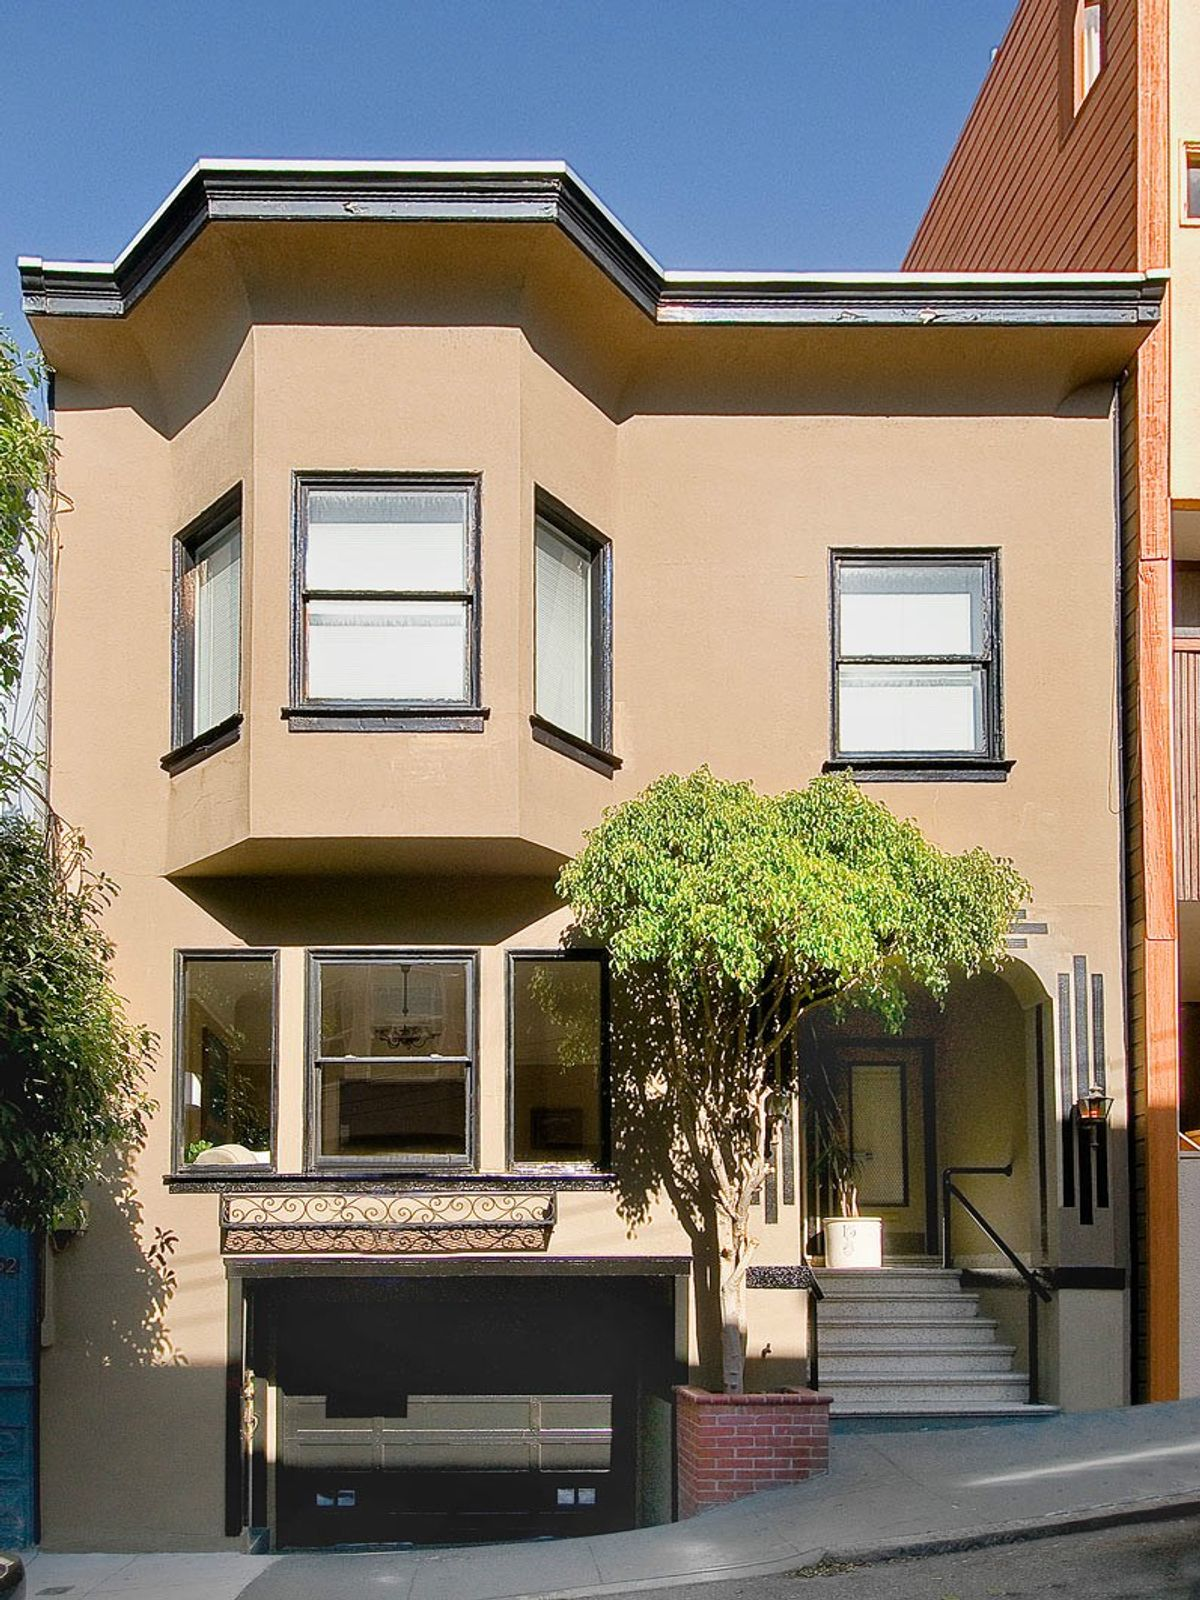 Russian Hill Gem, San Francisco CA Single Family Home - San Francisco Real Estate